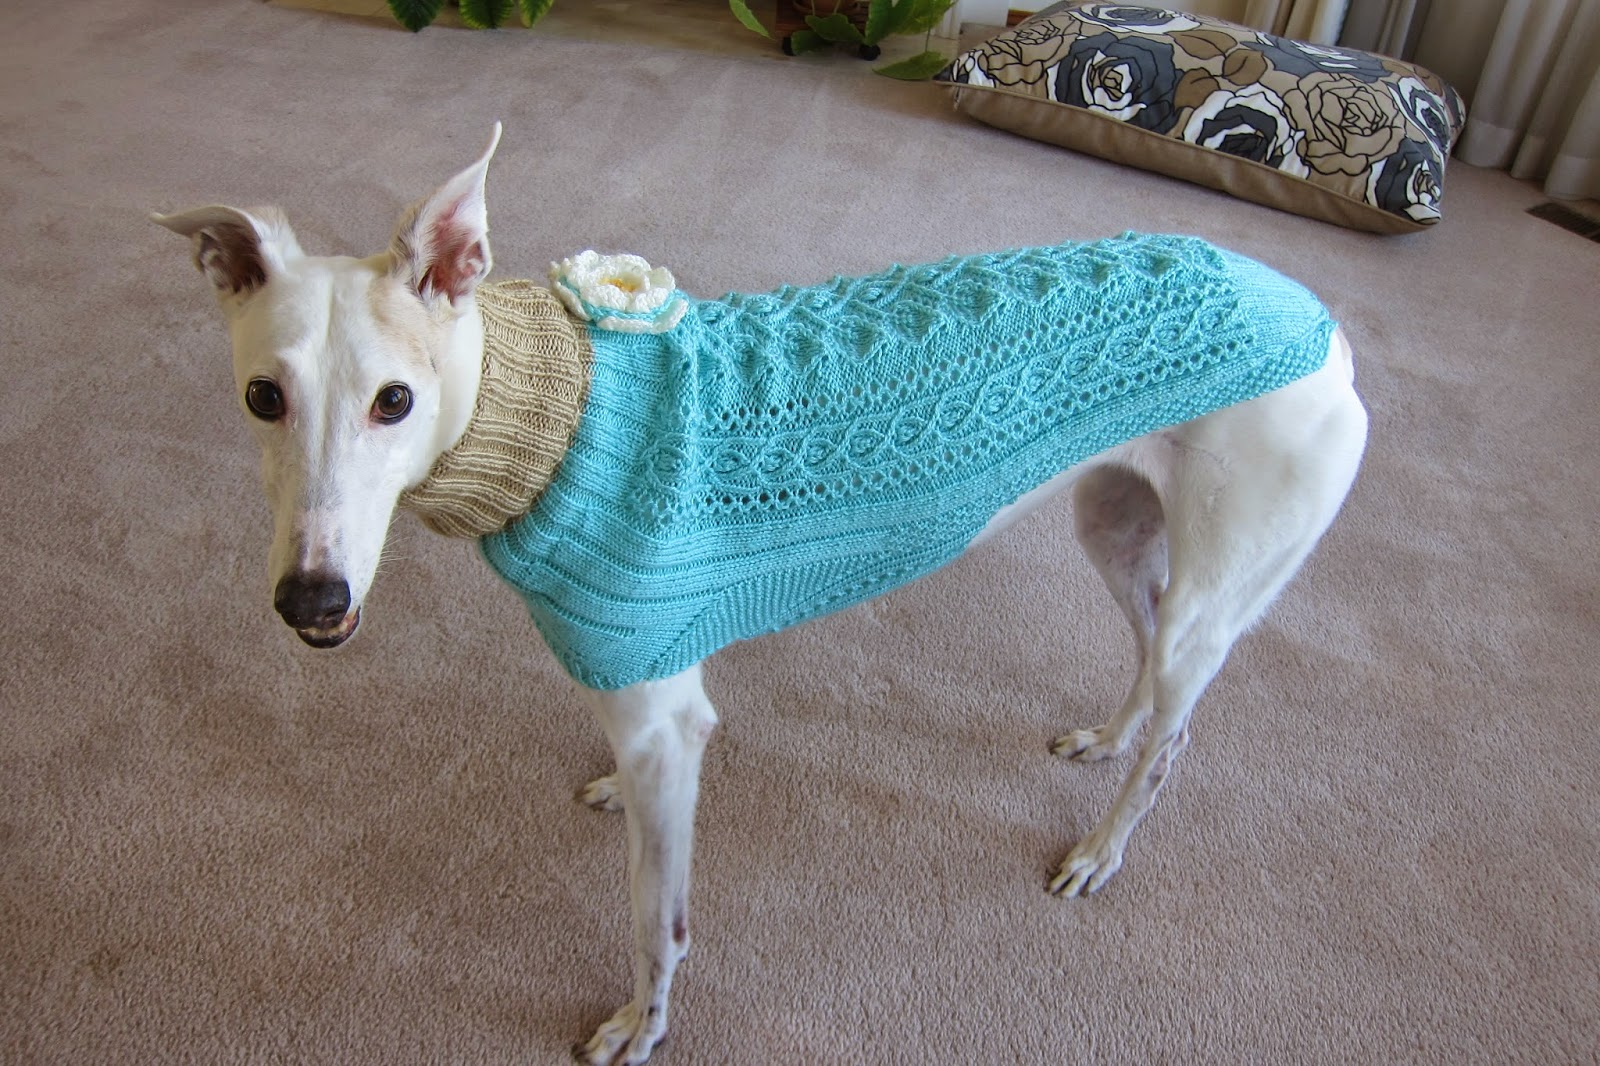 Knitting Patterns For Greyhound Sweaters : Knit Greyhound Sweater - Cashmere Sweater England